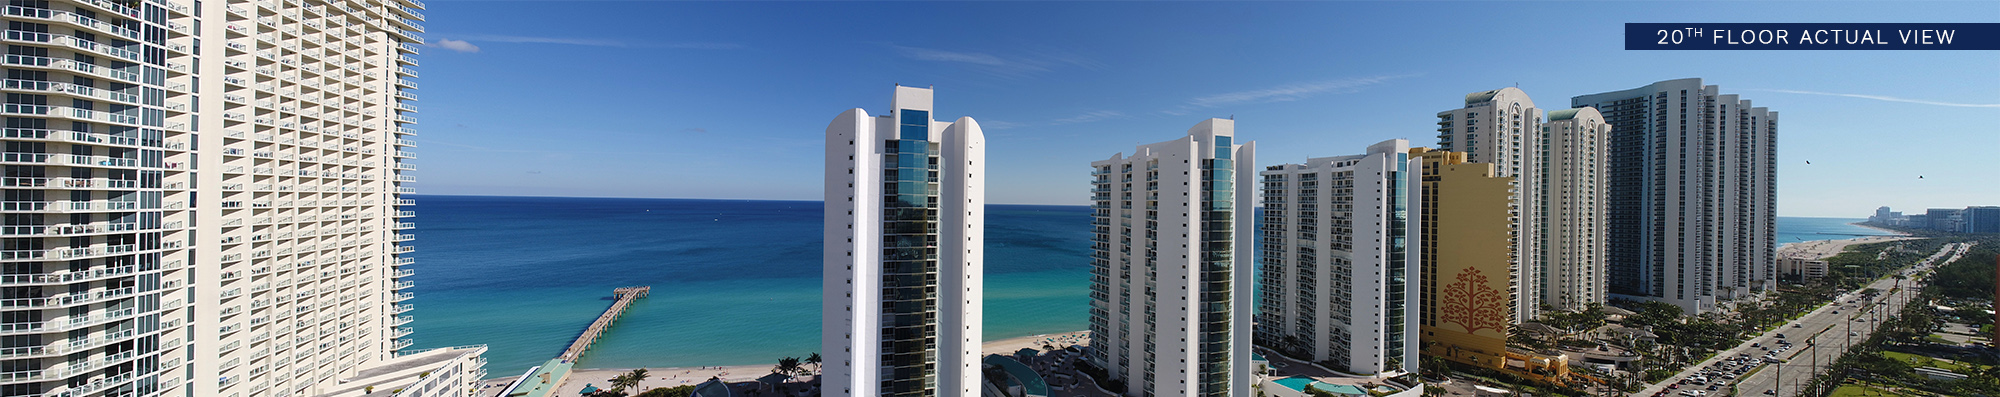 Panoramic view of sunny isles beach at floor 20th of Milton Tower